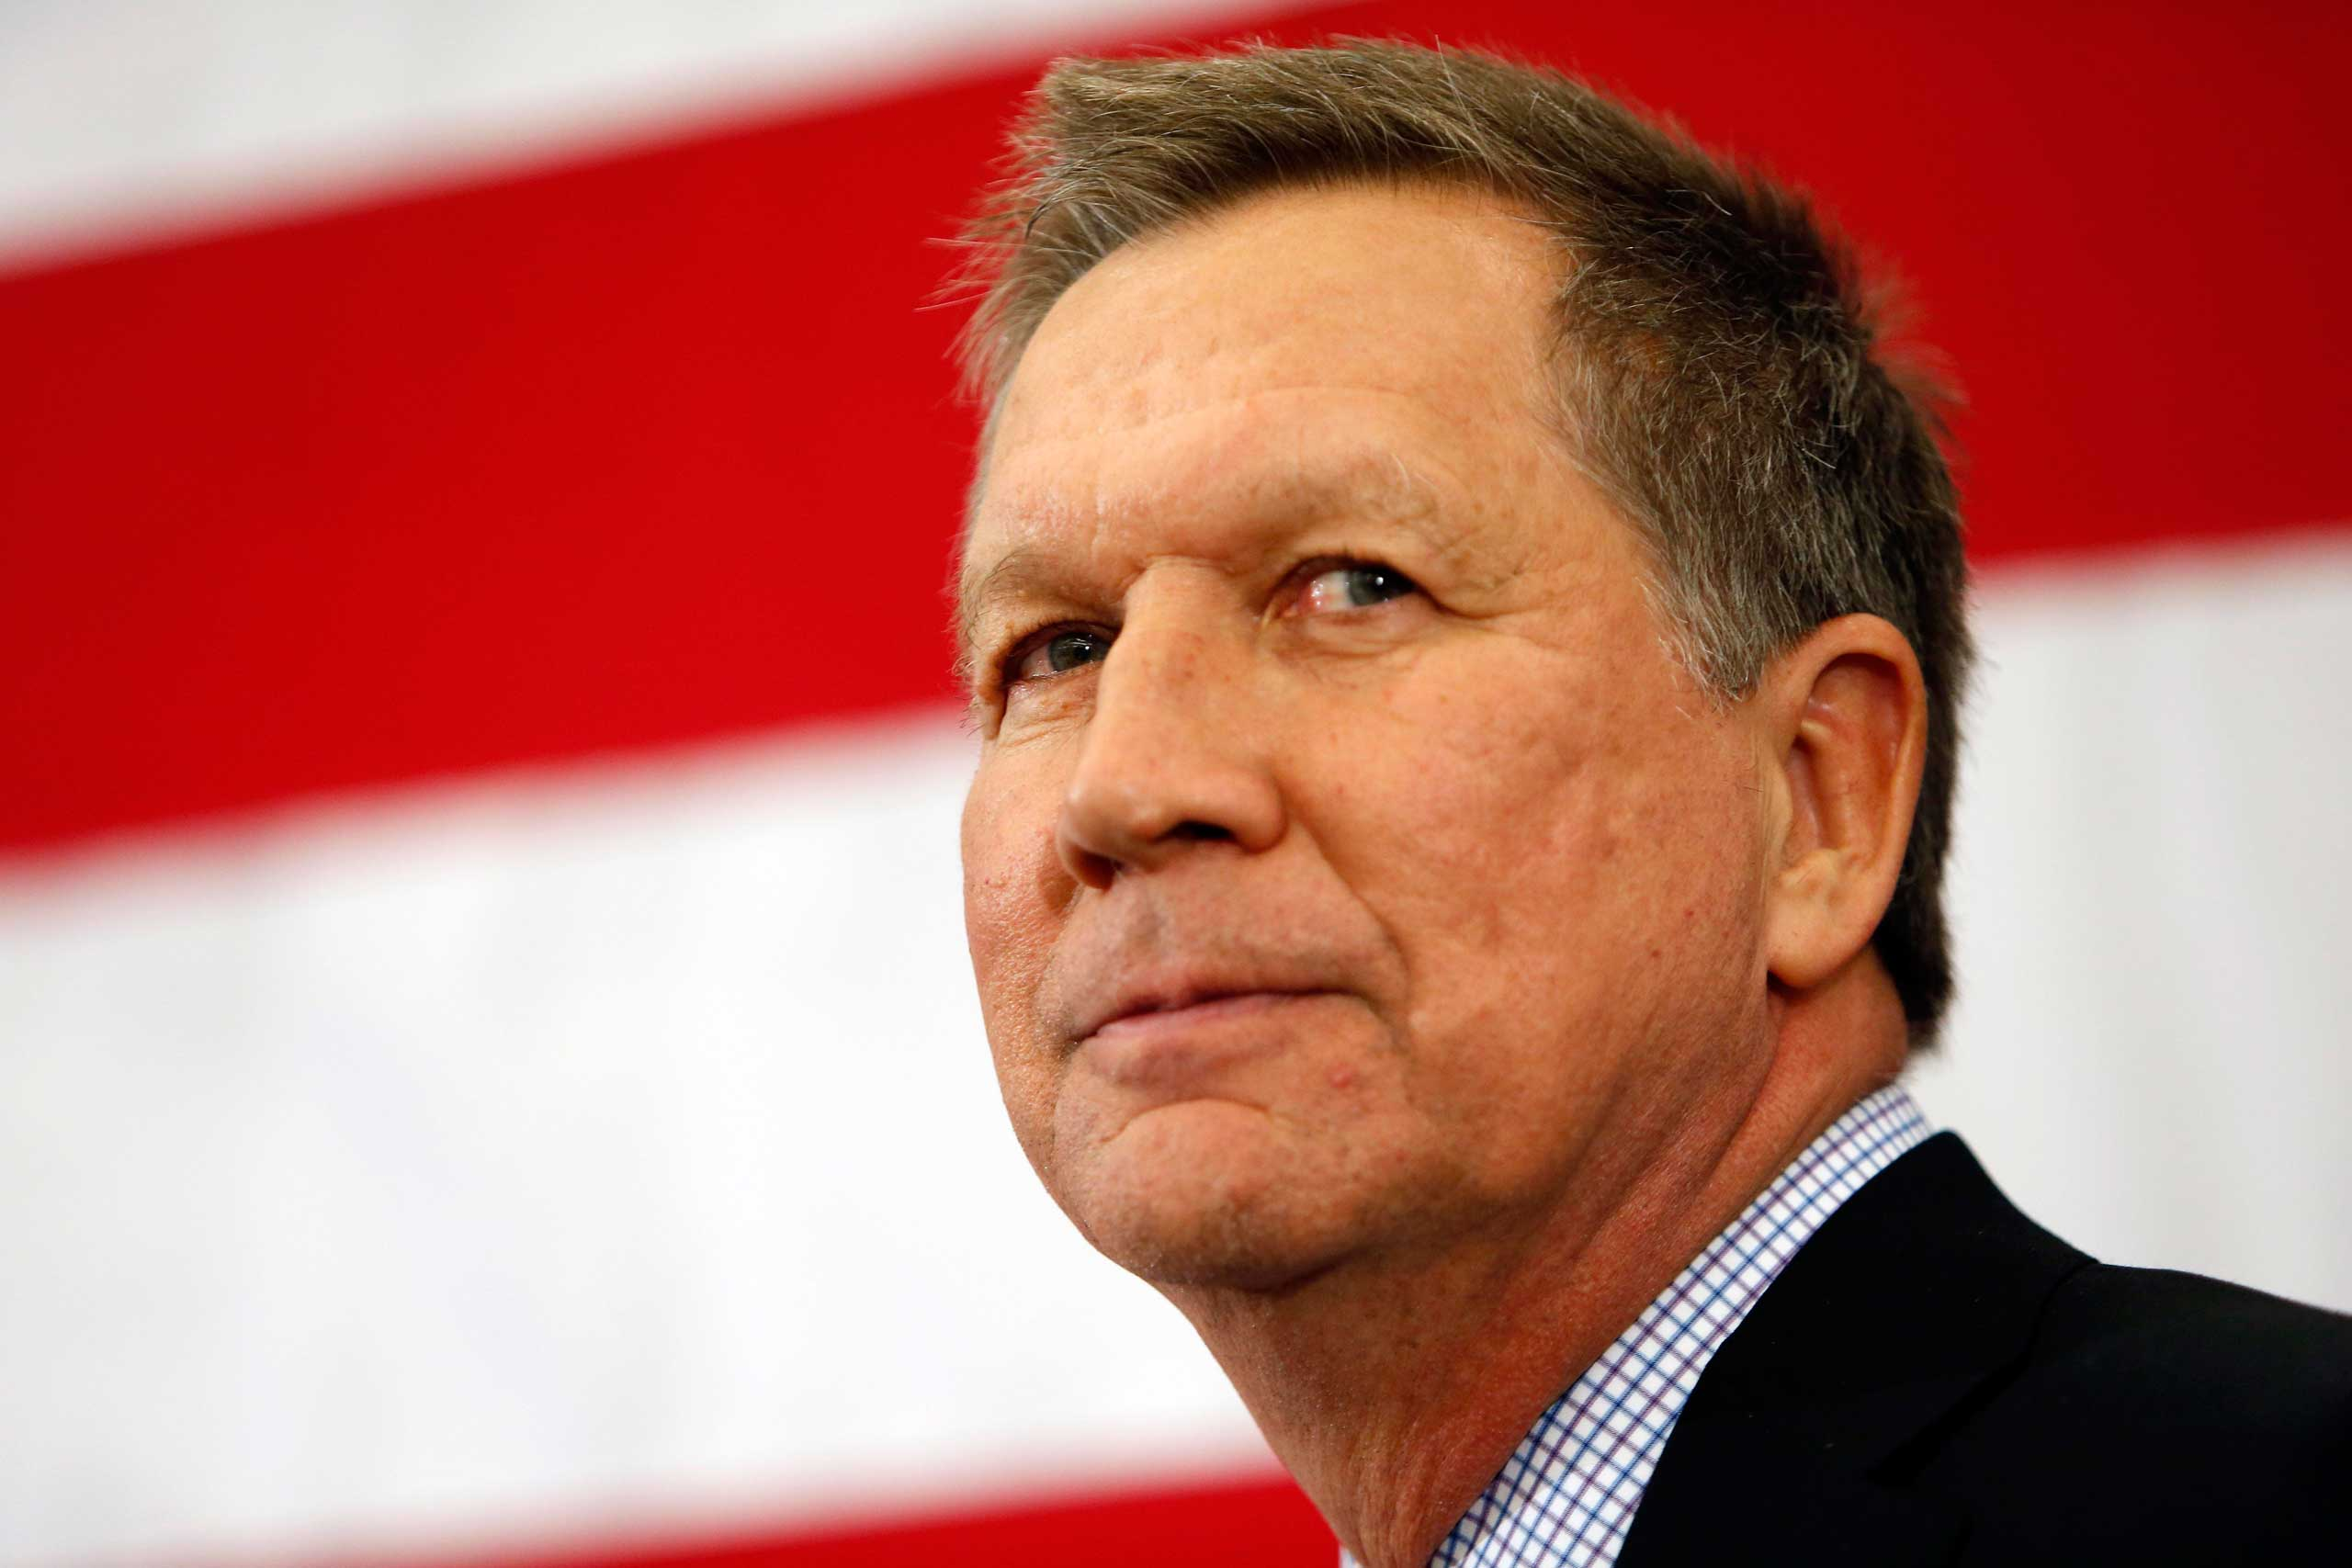 Gov. John Kasich, R-Ohio, speaks at the Republican Leadership Summit in Nashua, N.H. on April 18, 2015.